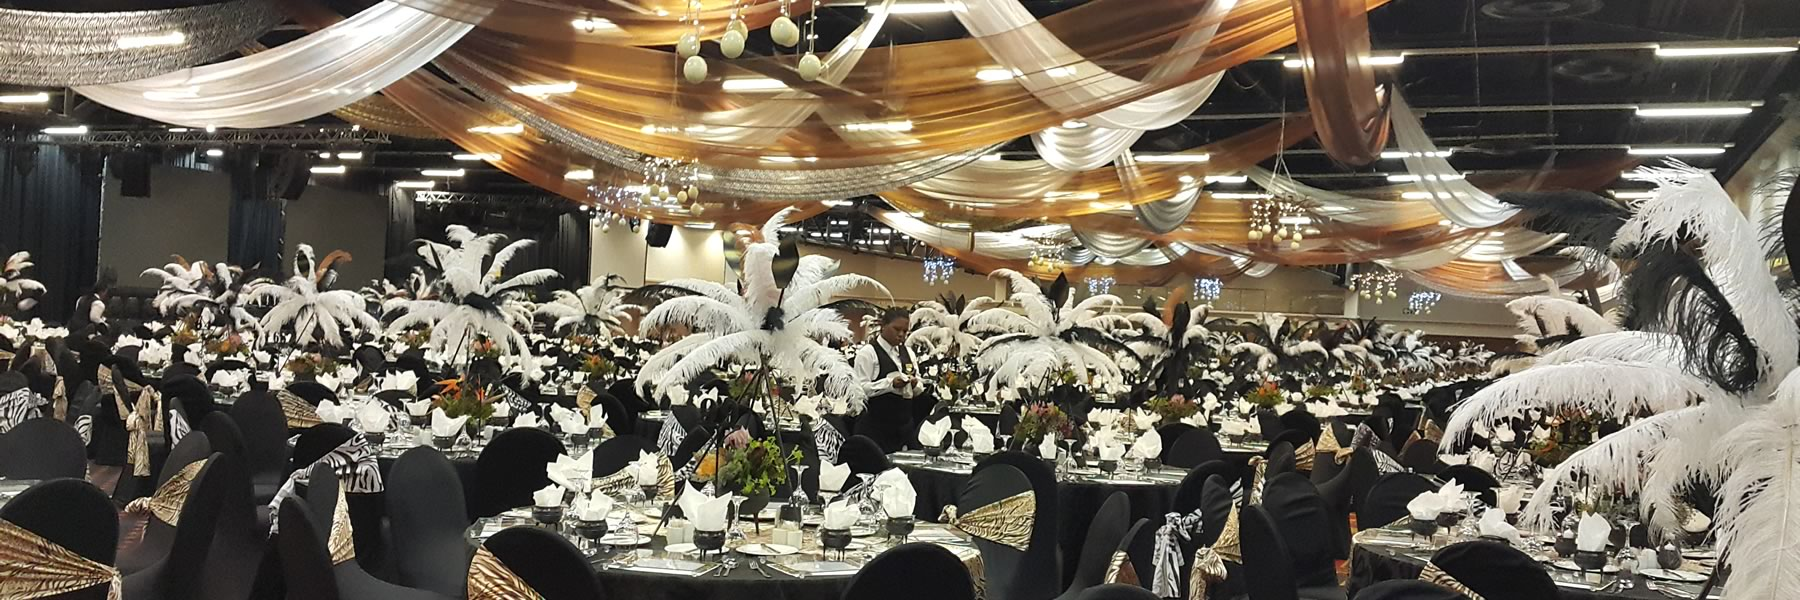 Ambrosia Events and Decor